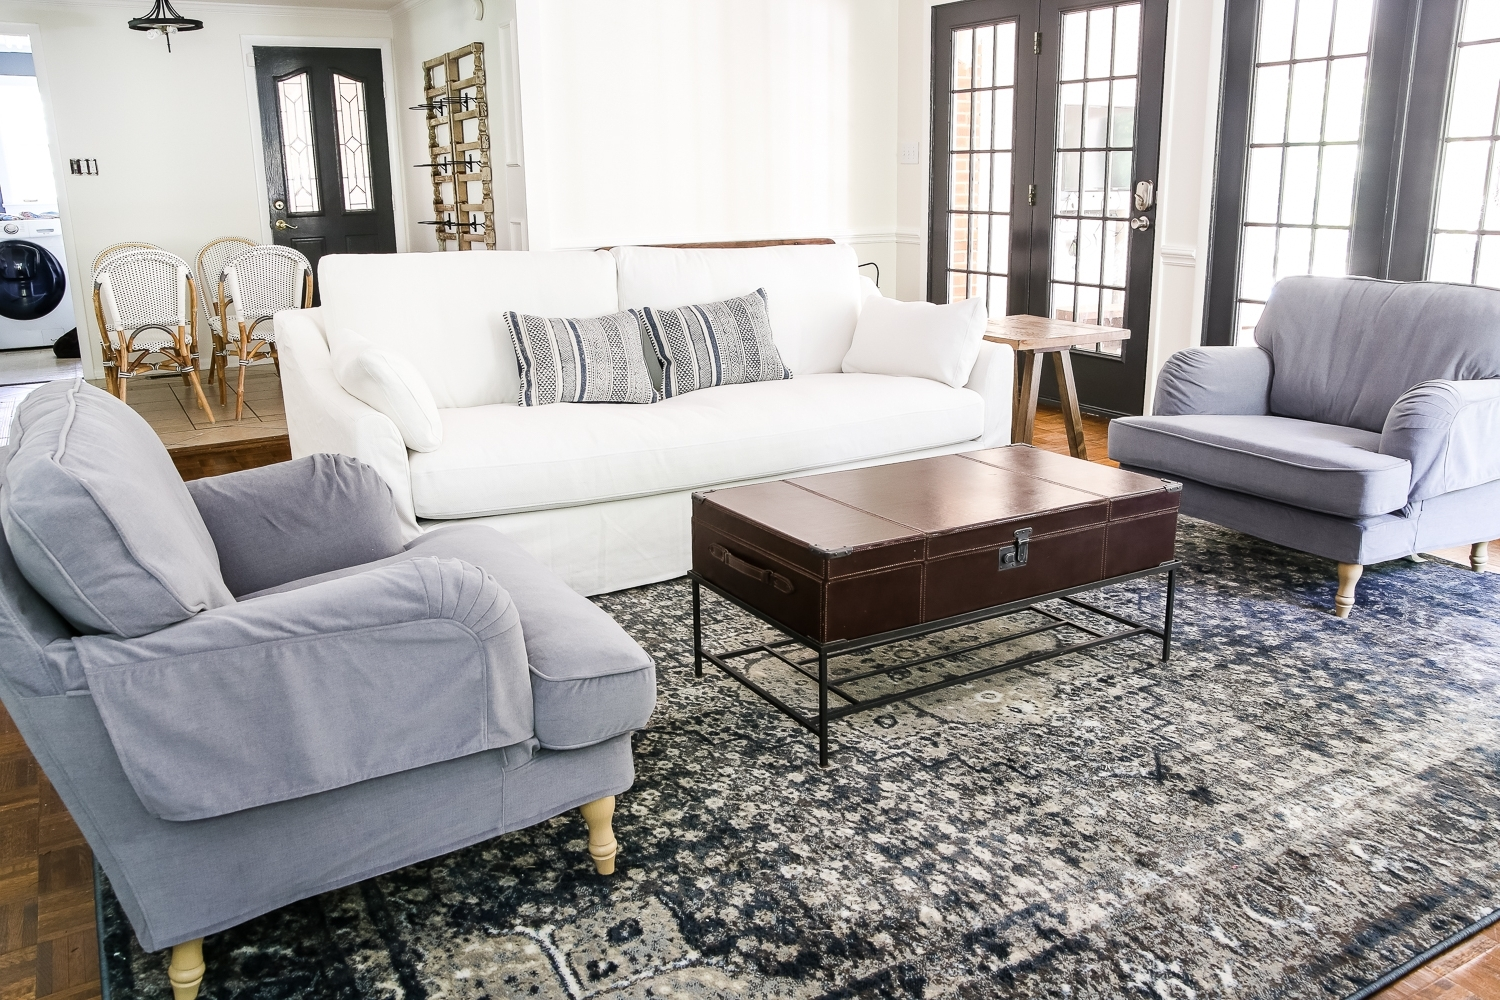 Ikea's New Sofa And Chairs And How To Keep Them Clean – Bless'er House Pertaining To Fashionable Comfortable Sofas And Chairs (View 17 of 20)